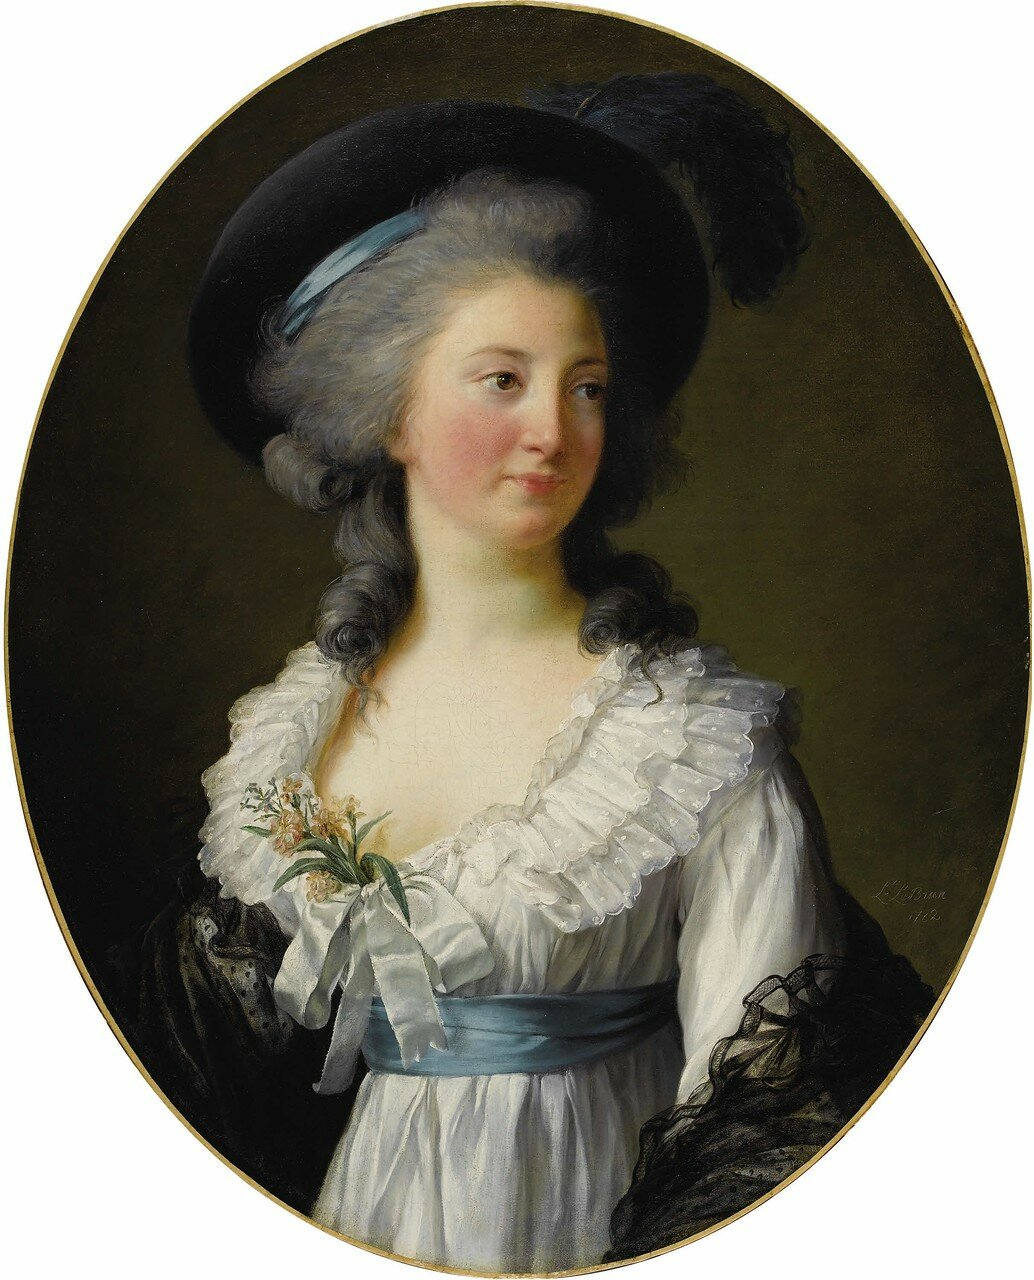 ELISABETH LOUISE VIGÉE-LEBRUN (French 1755 - 1842) Portrait of Madame de Moreton, La Comtesse Moreton de ChabrillanSigned E. L. LeBrun and dated 1782